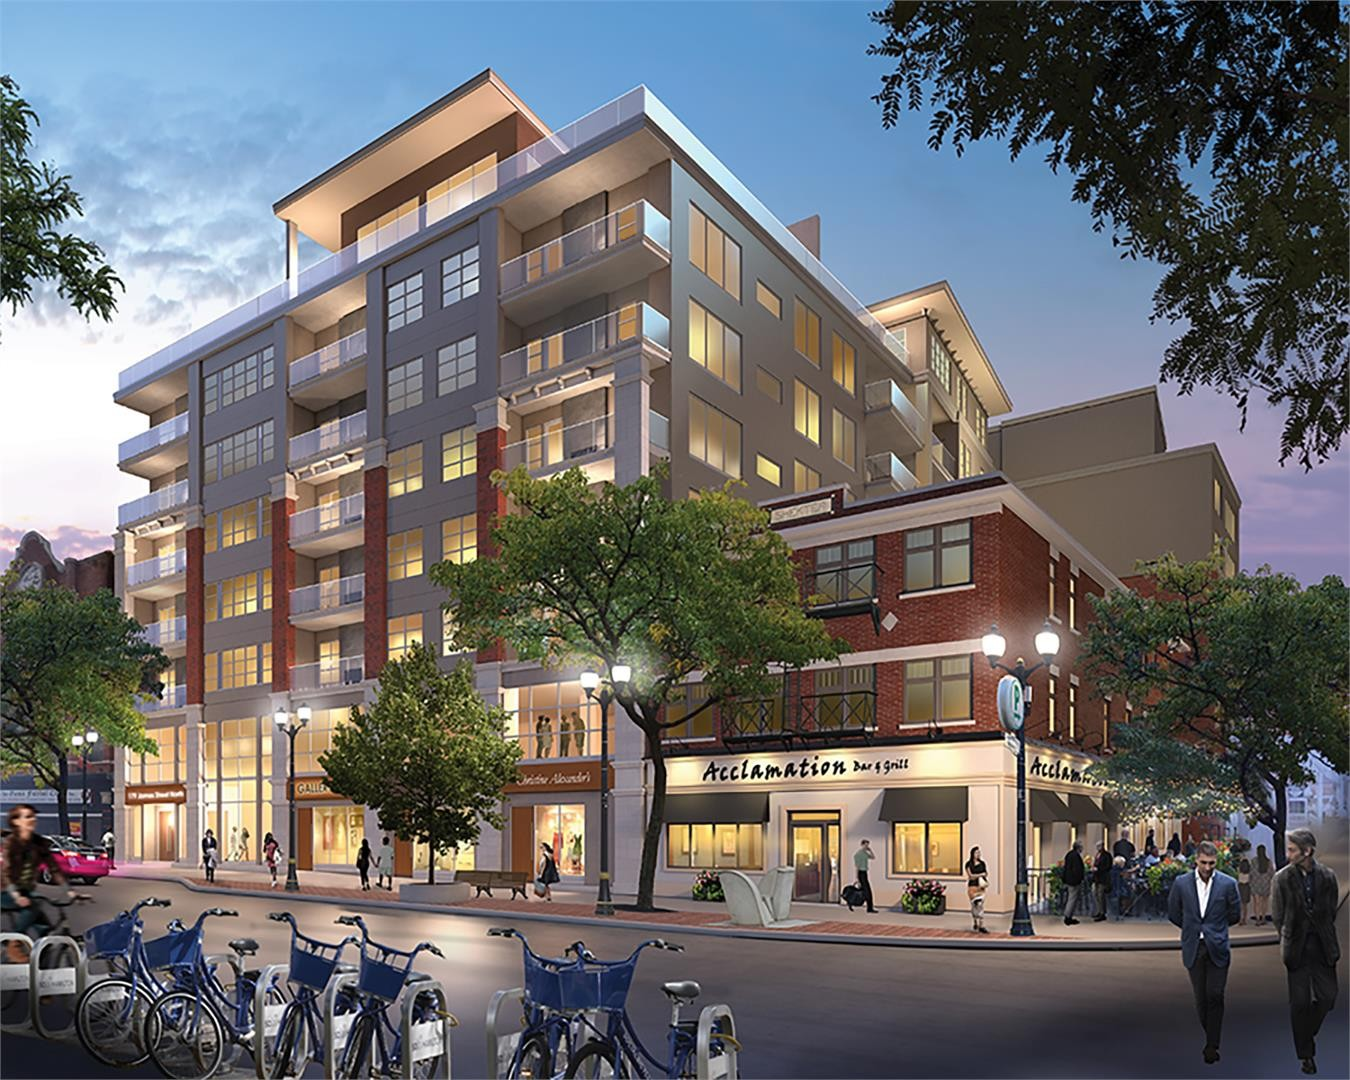 The Residences at Acclamation at 181 James St N, Hamilton City 0